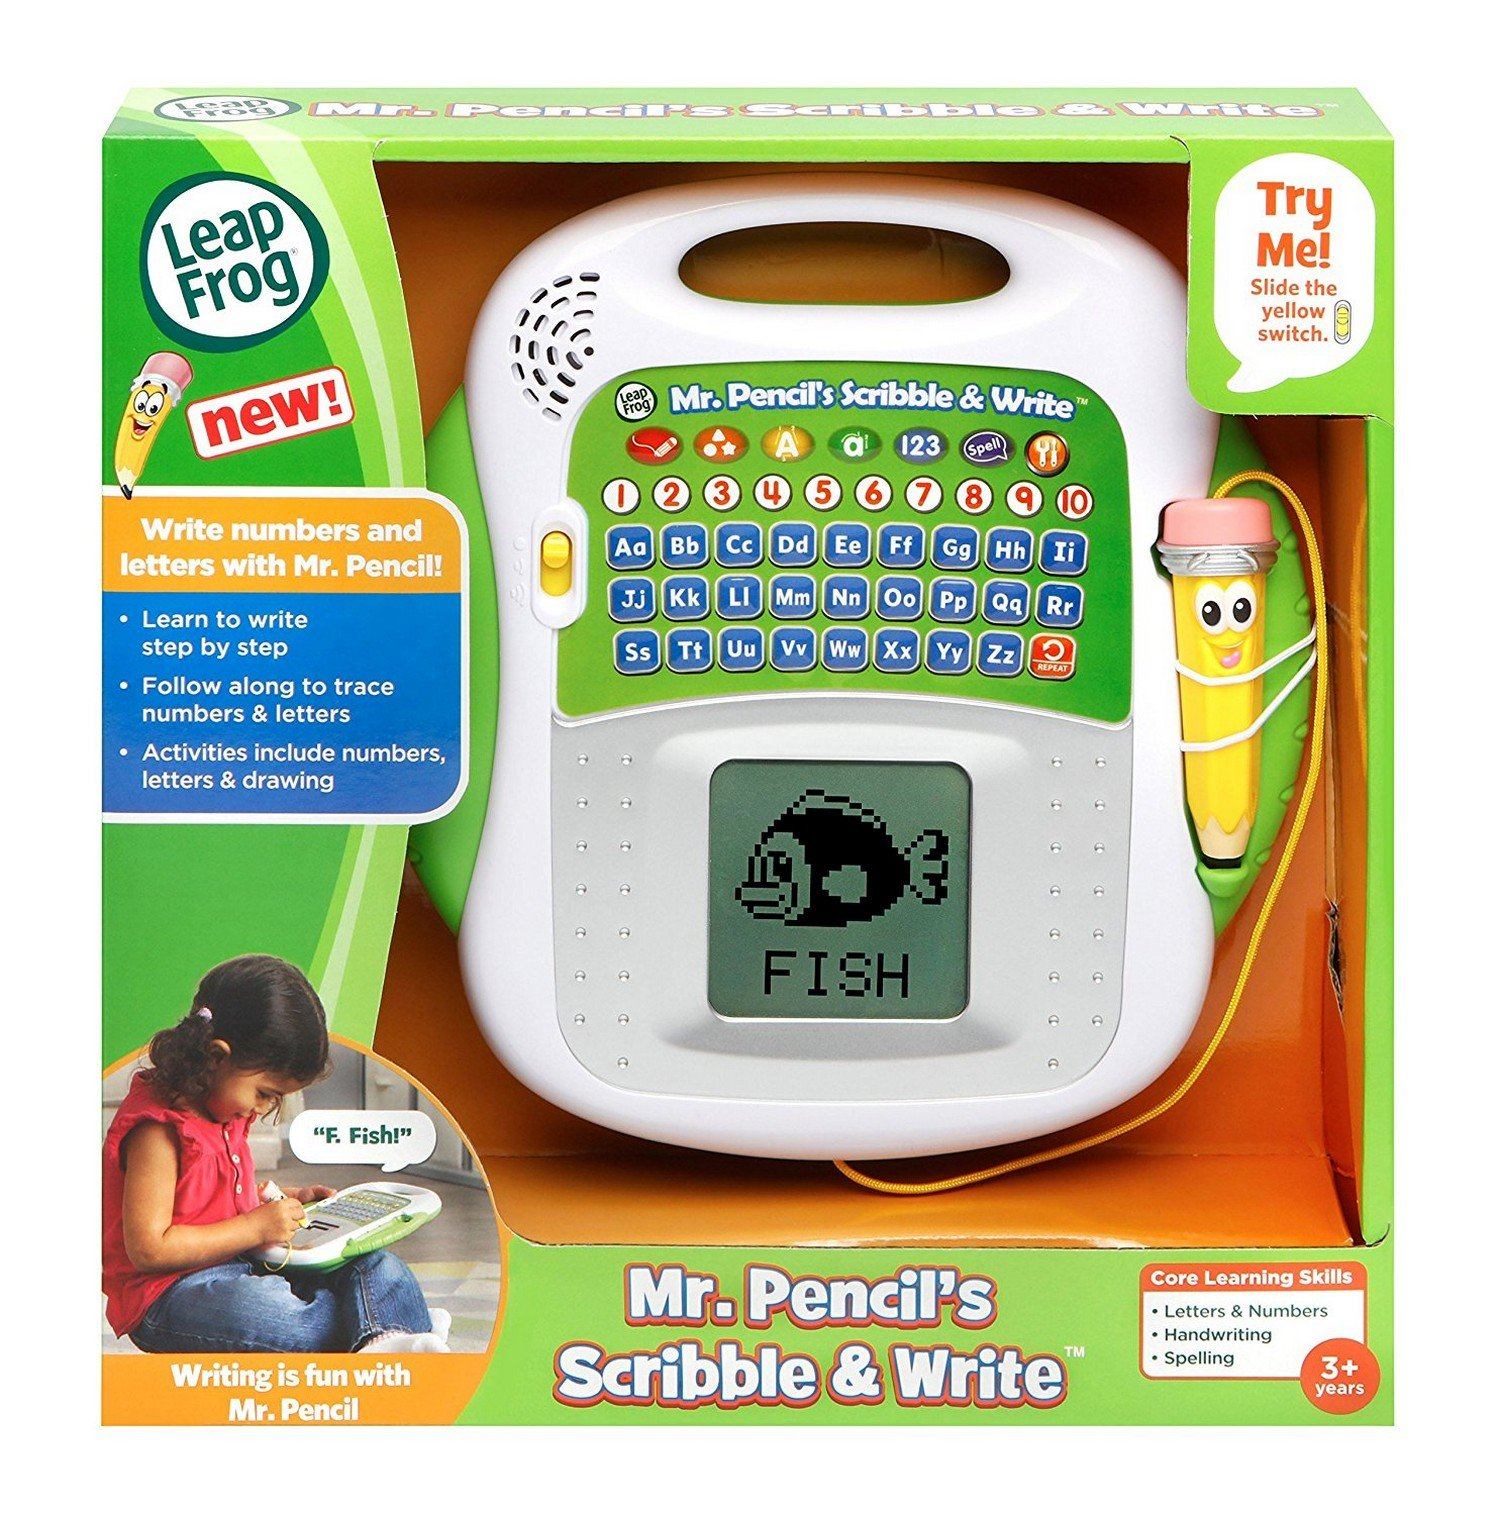 Vtech Mr Pencil's Scribble and Write Learning Toy